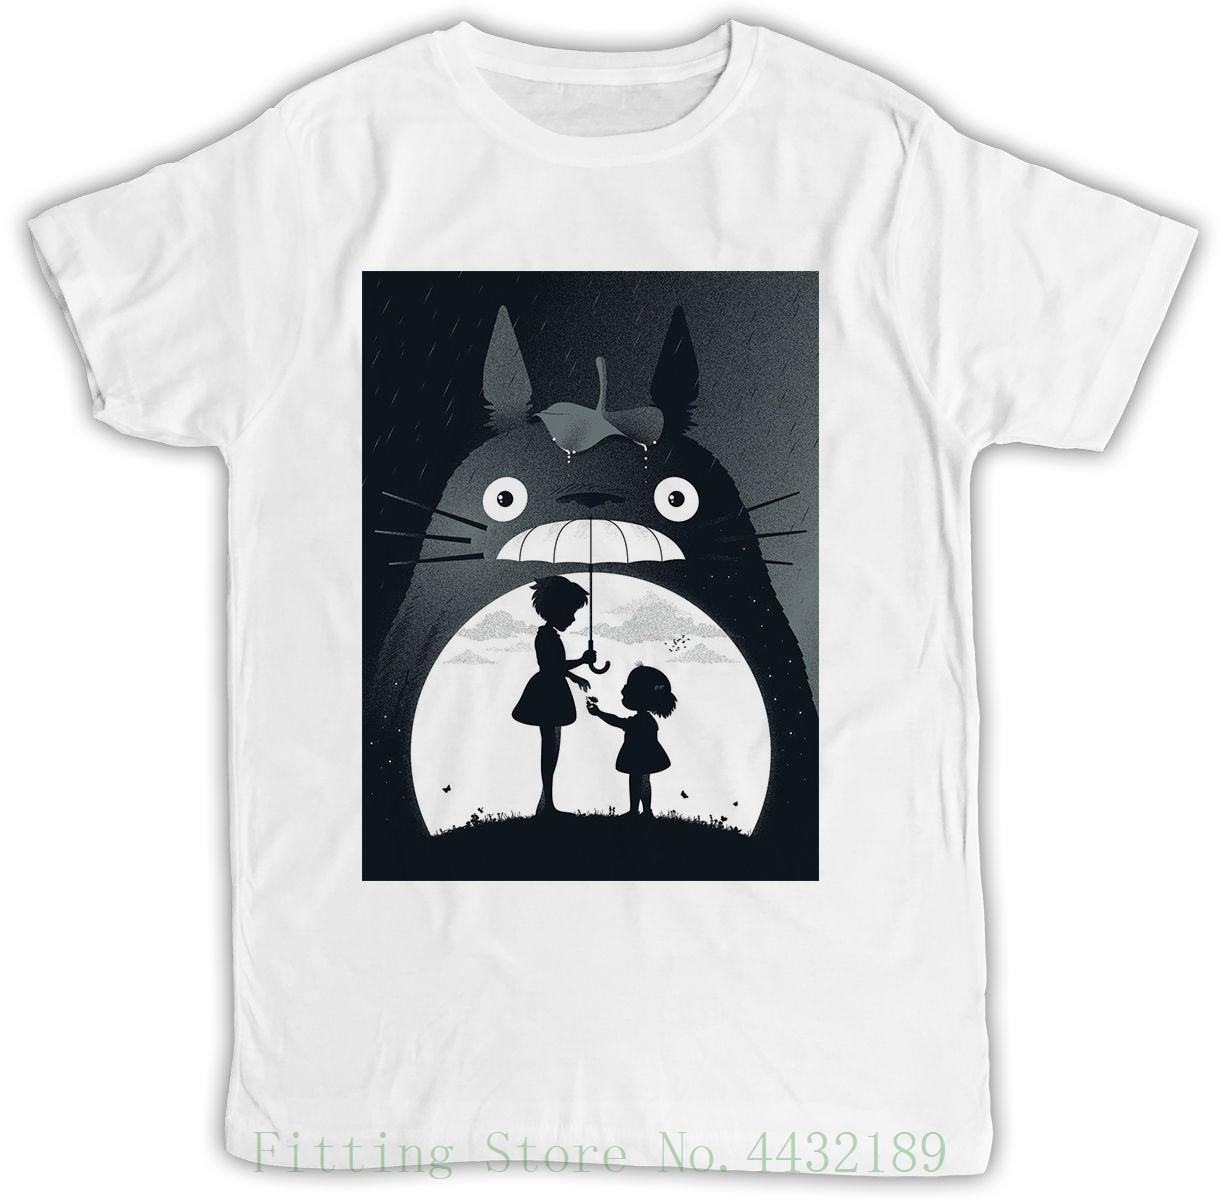 My Neighbor Totoro Poster Ideal Gift Birthday Present Cool Retro Funny T Shirt O Neck Teenage Vintage Cute Shirts From Aaa888tshirts